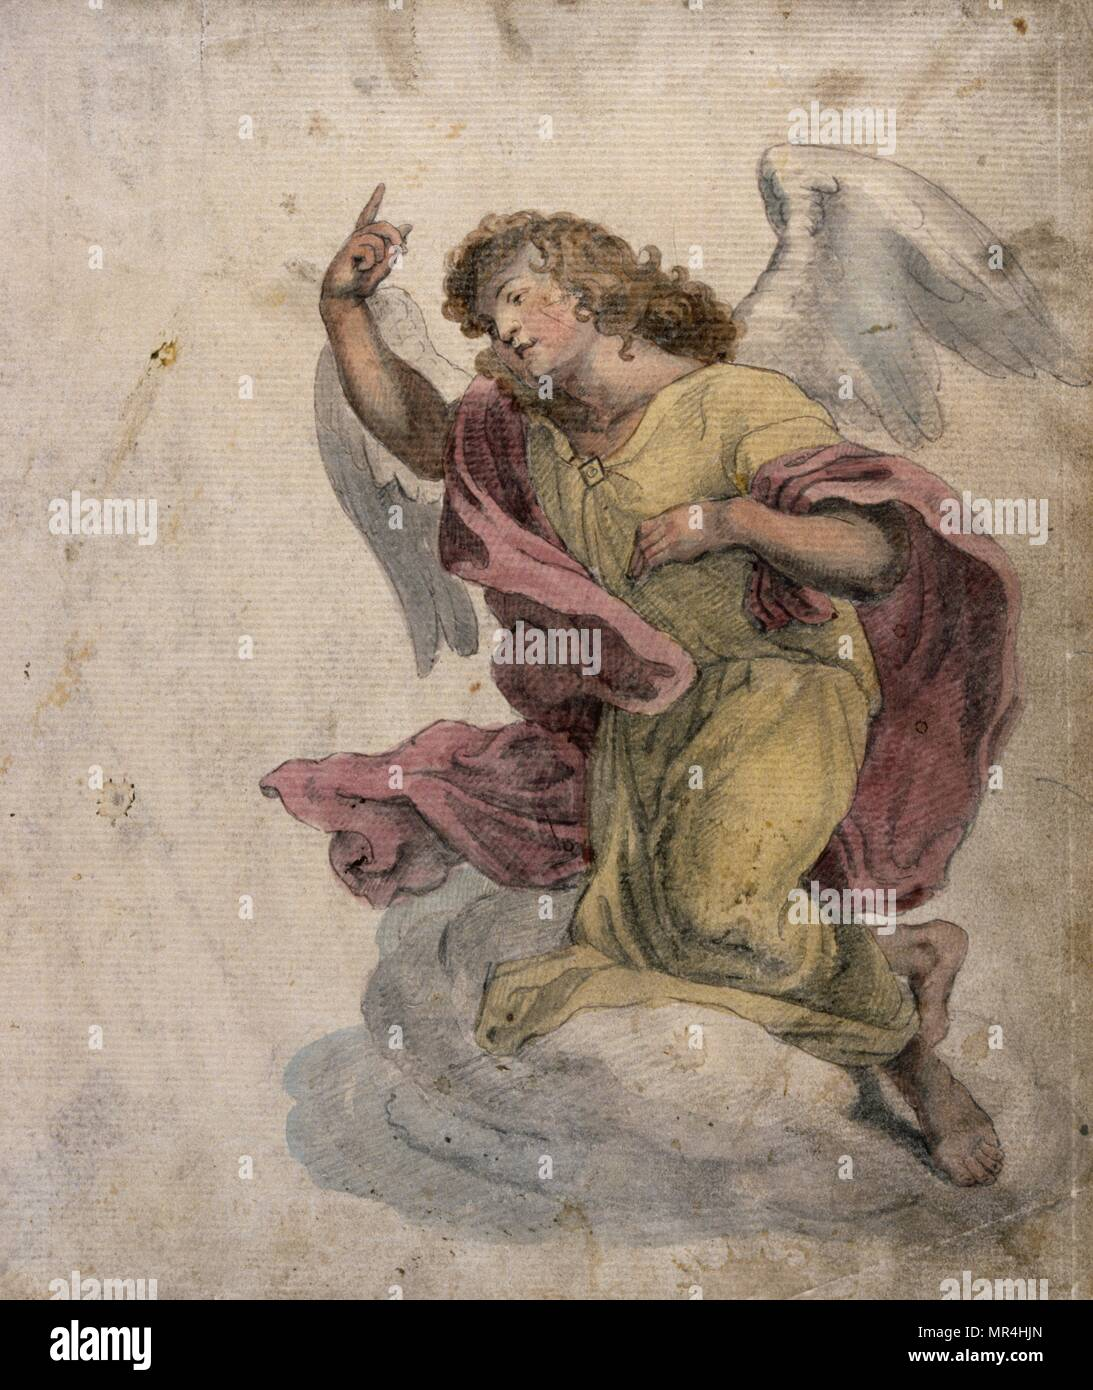 watercolour illustration showing an angel. French circa 1830 - Stock Image